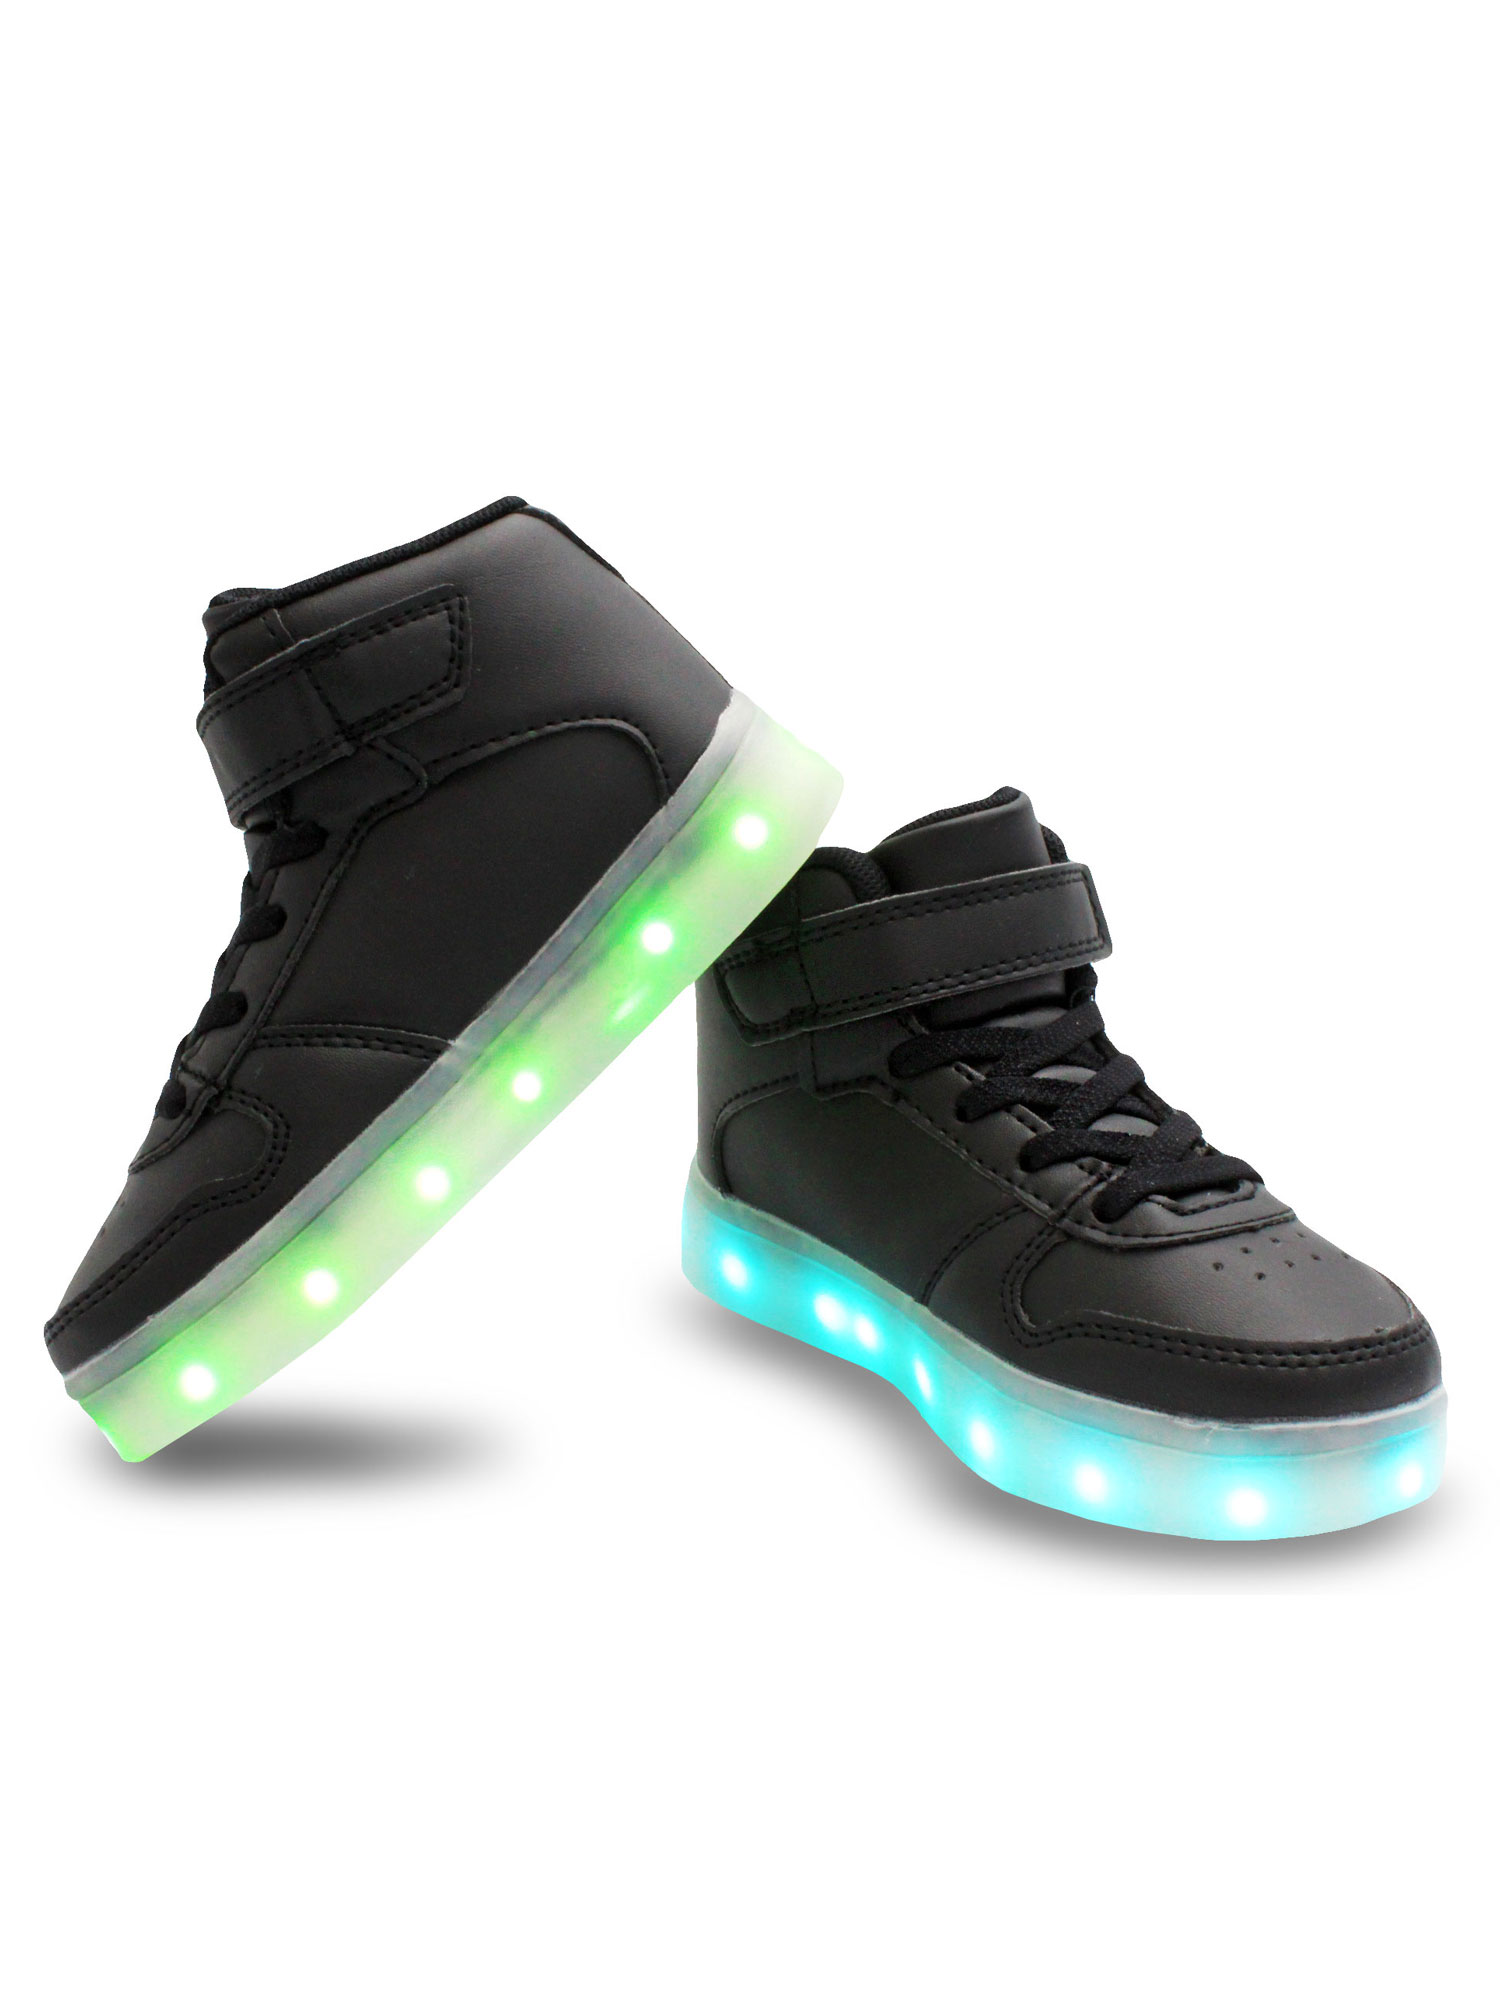 Galaxy LED Shoes Light Up USB Charging High Top Kids Sneakers (Black) -  Walmart.com